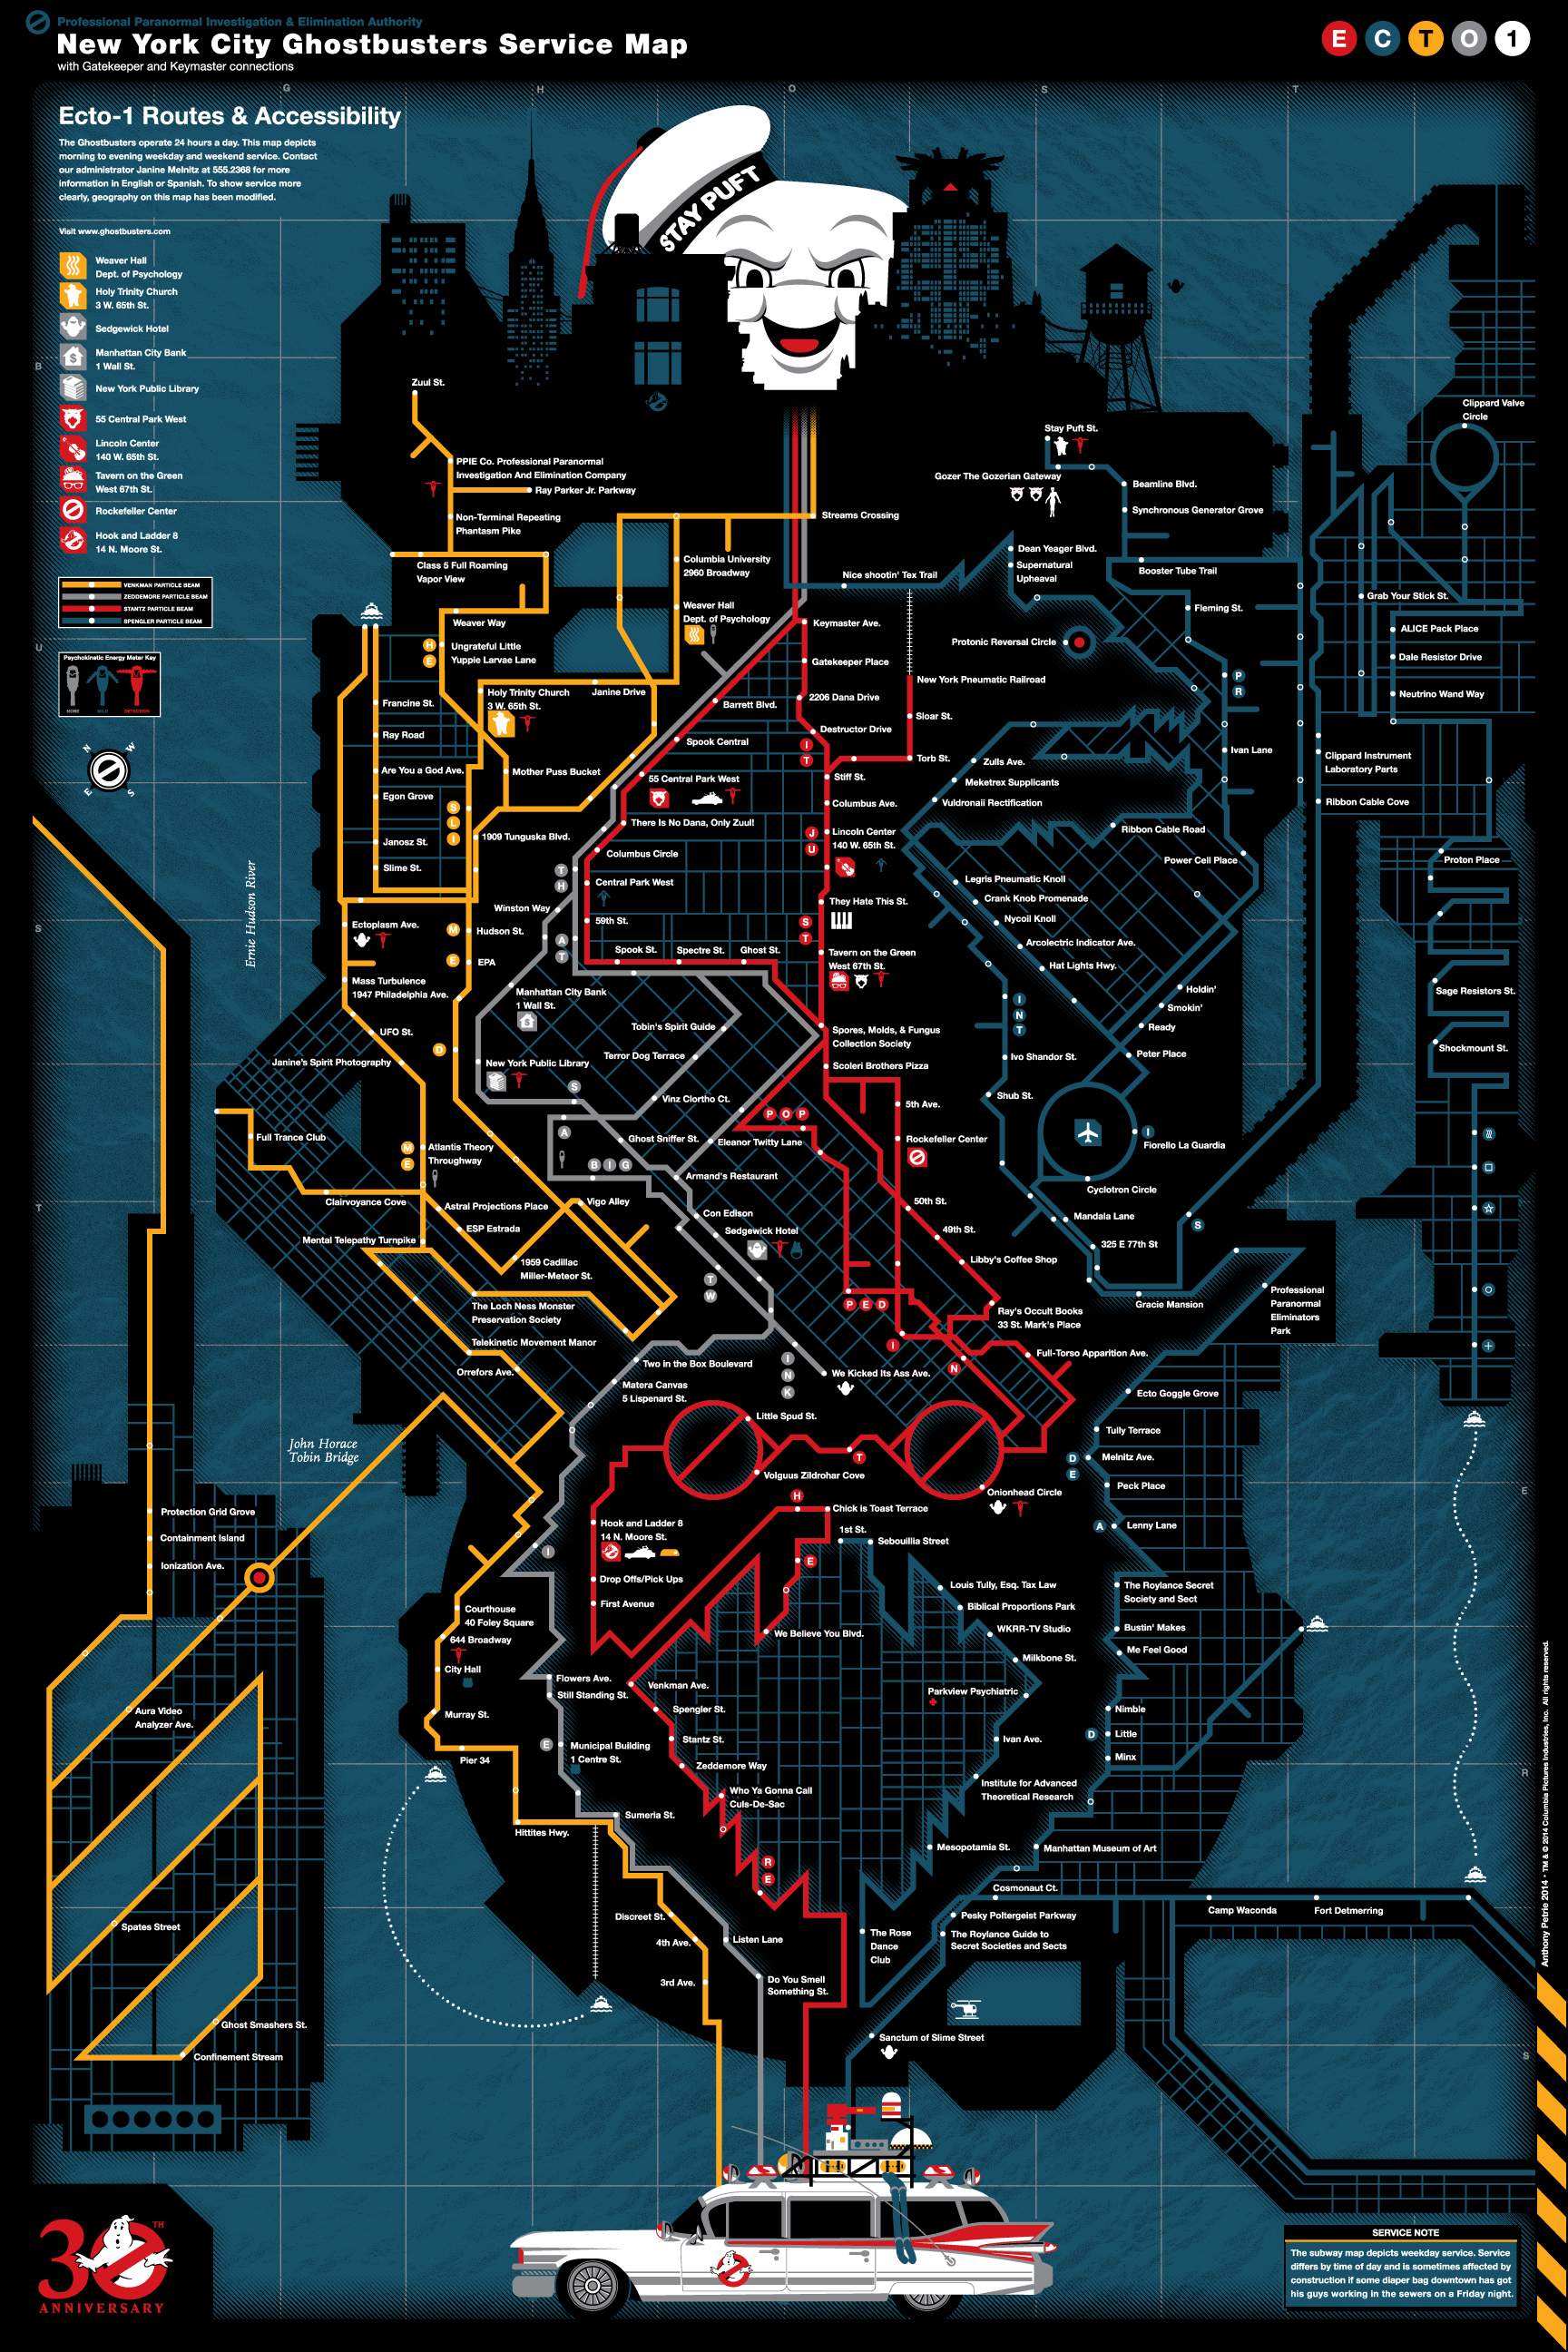 NYC-Ghostbusters Service Map